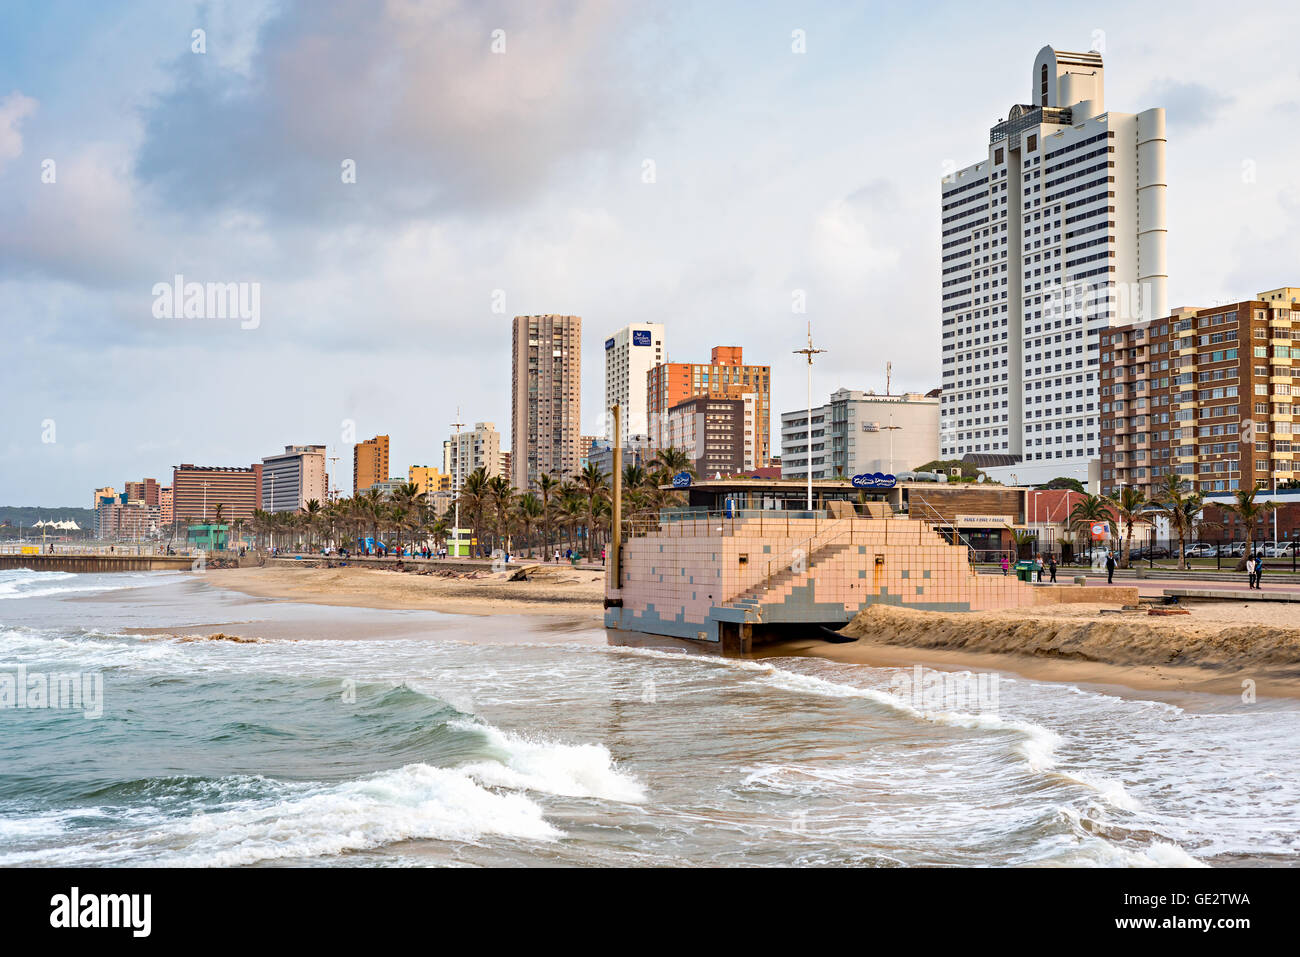 DURBAN, SOUTH AFRICA - AUGUST 17, 2015: The Golden Mile promenade from the pier at North Beach - Stock Image